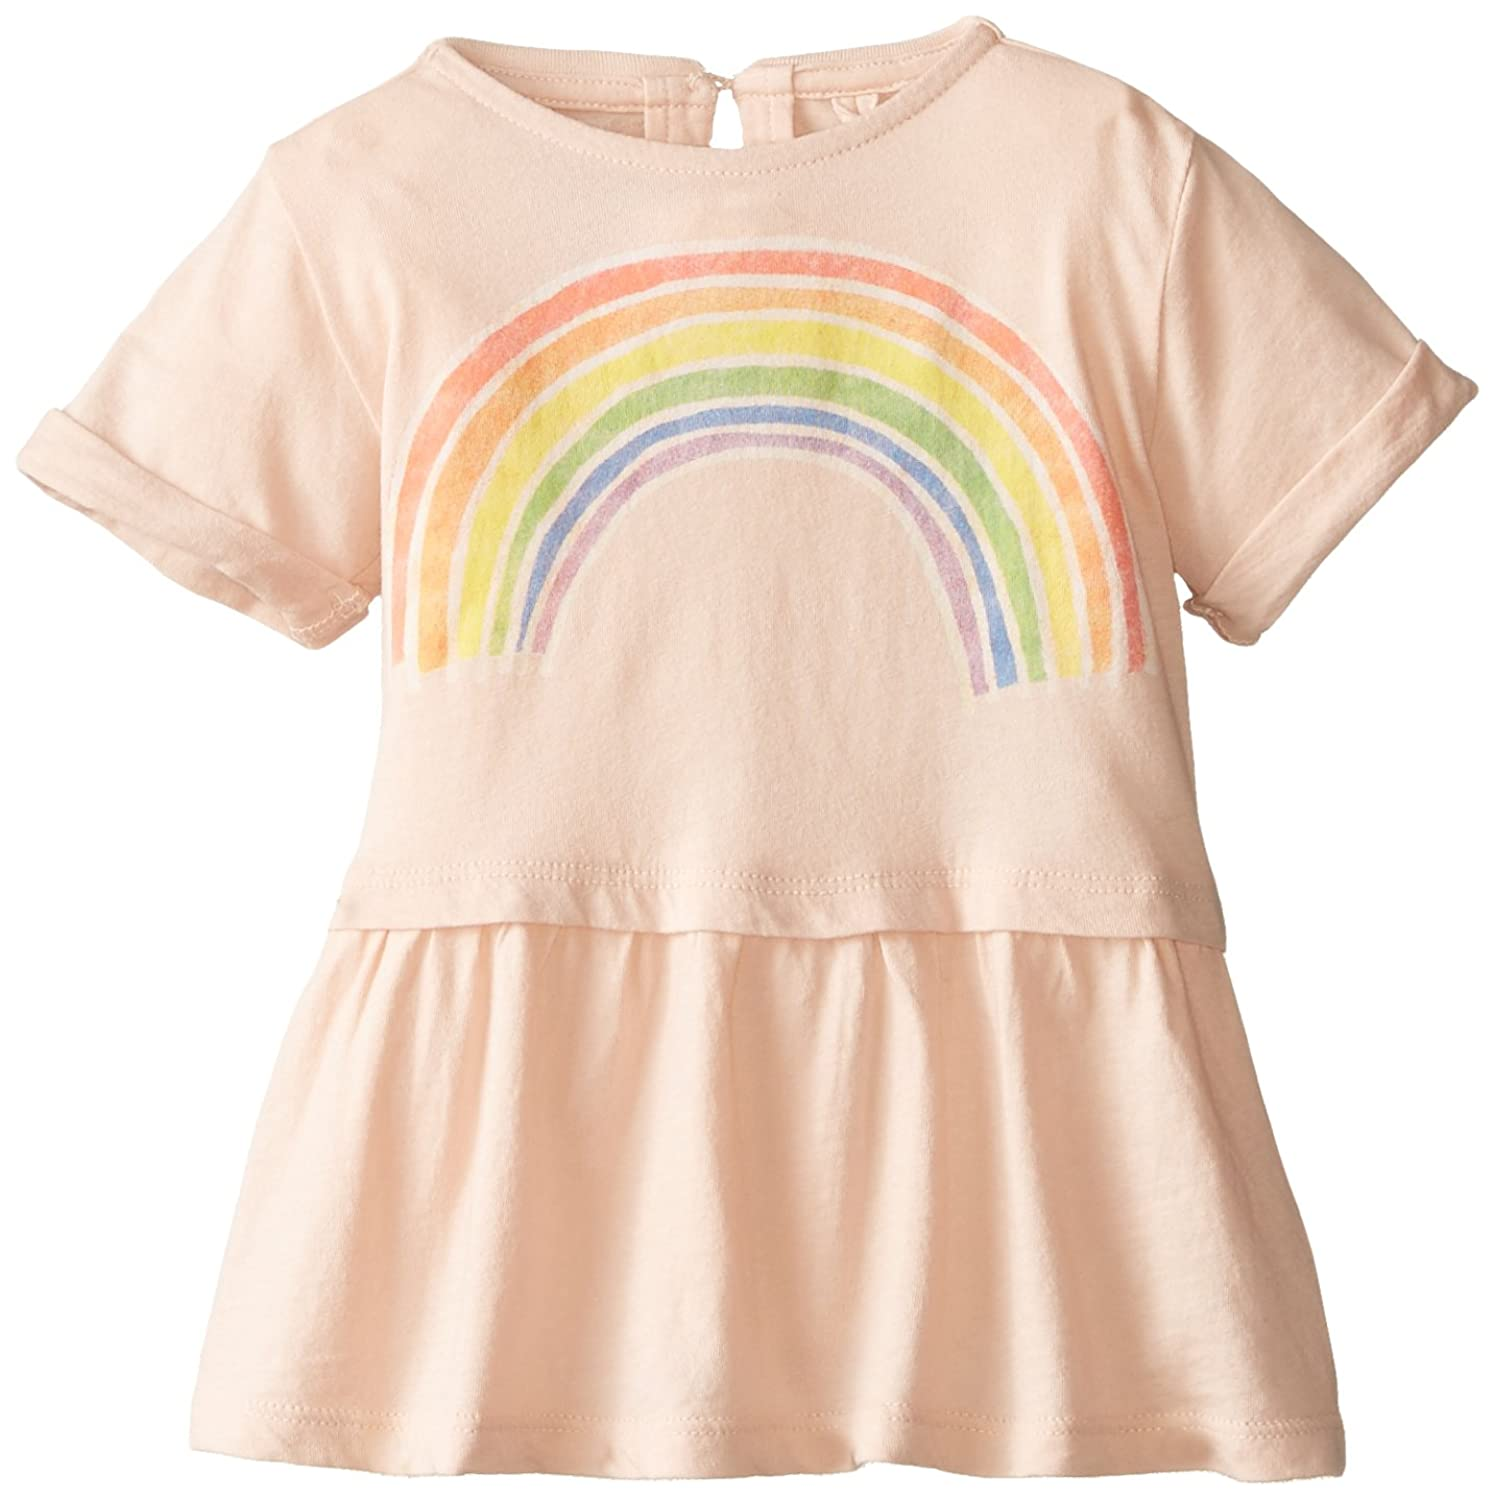 Stella McCartney Baby Girls' Jess Rainbow Dress цены онлайн